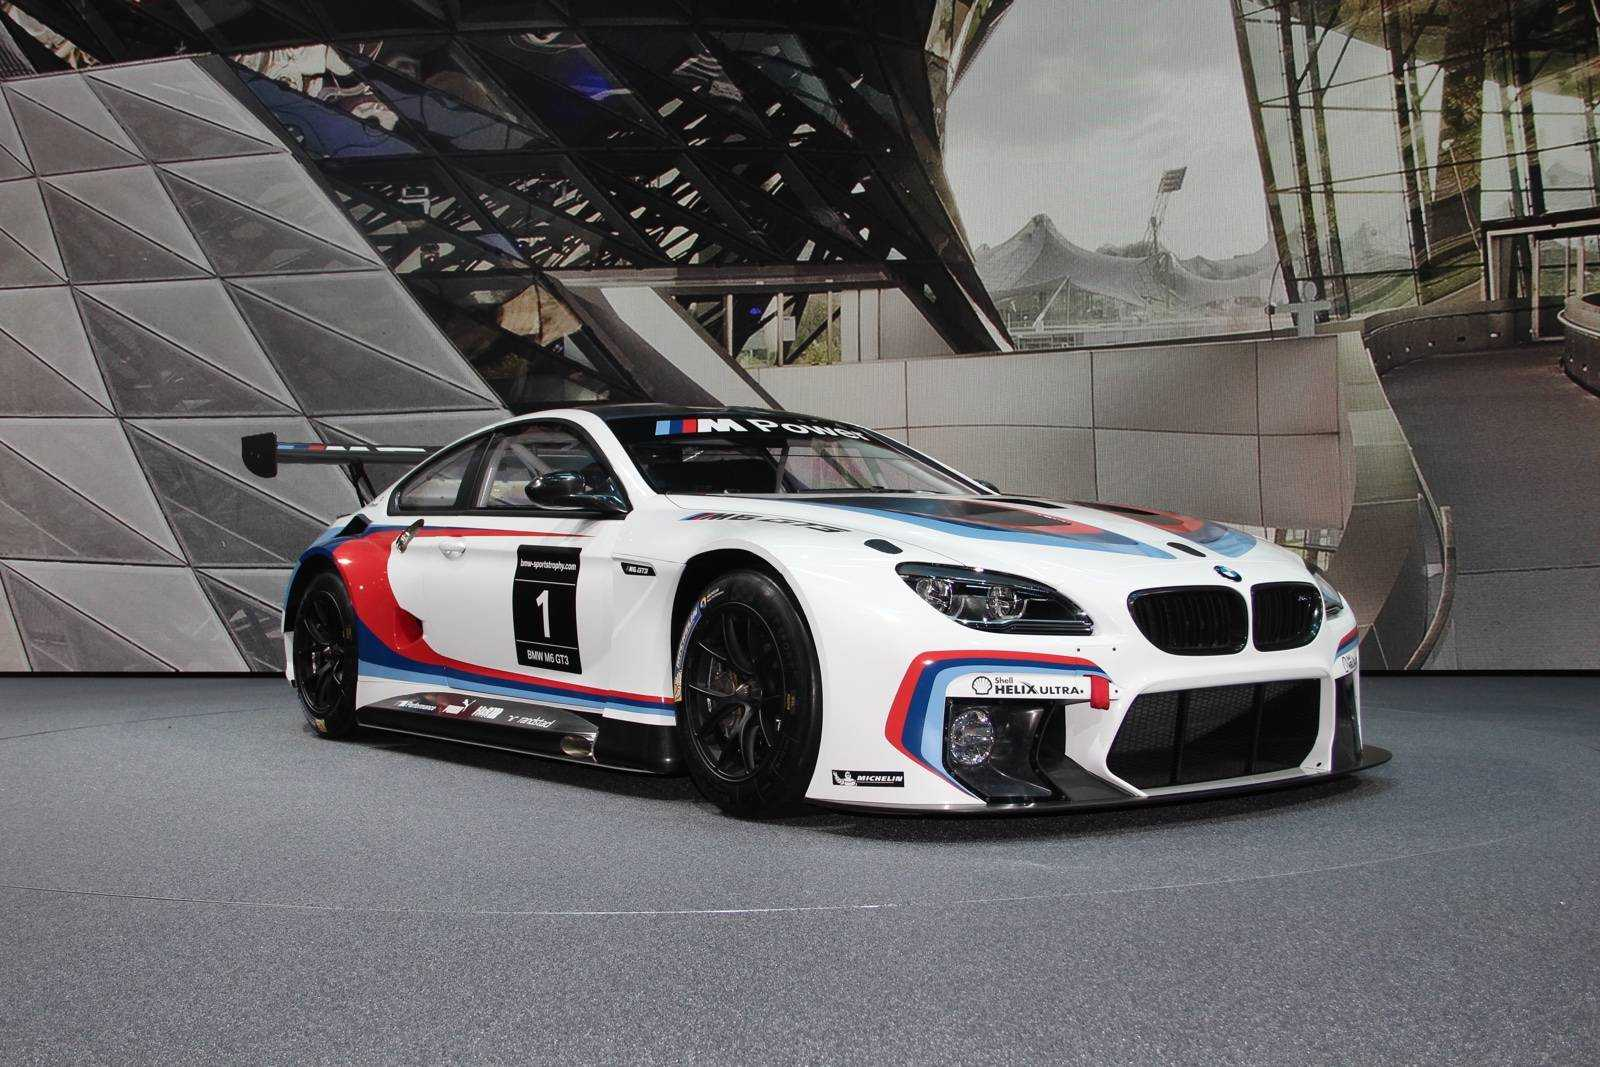 Bmw M6 Gt3 Debuts At The 66th Iaa Cars 2015 All Set To Take Gt Racing Circuit By Storm